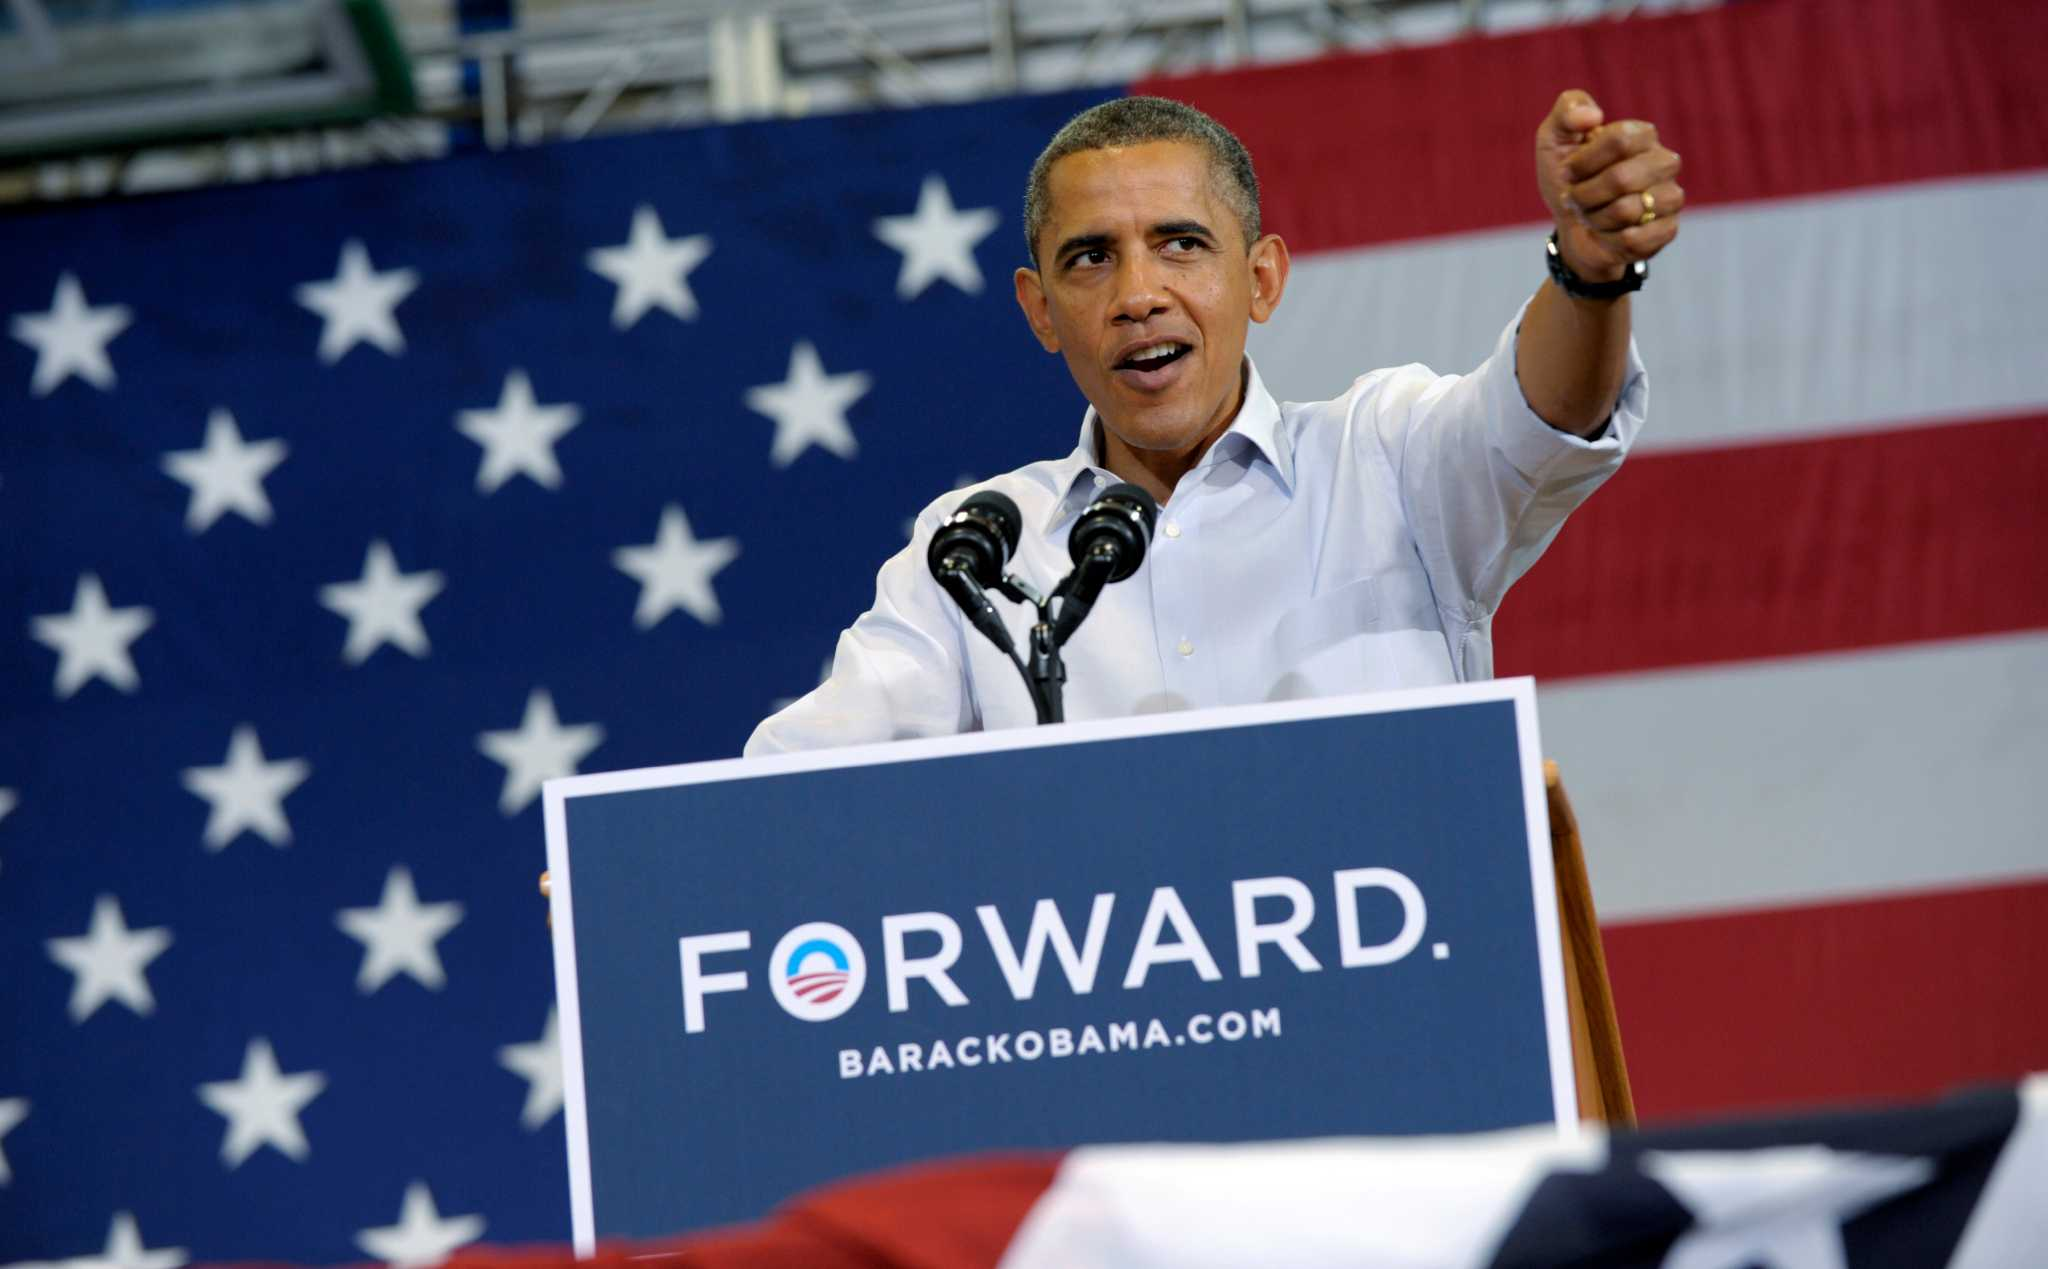 what traits might barack obama possess that contribute to his strong leadership ability Of traits of leadership does he have what traits might barack obama possess that contribute to his strong leadership ability.